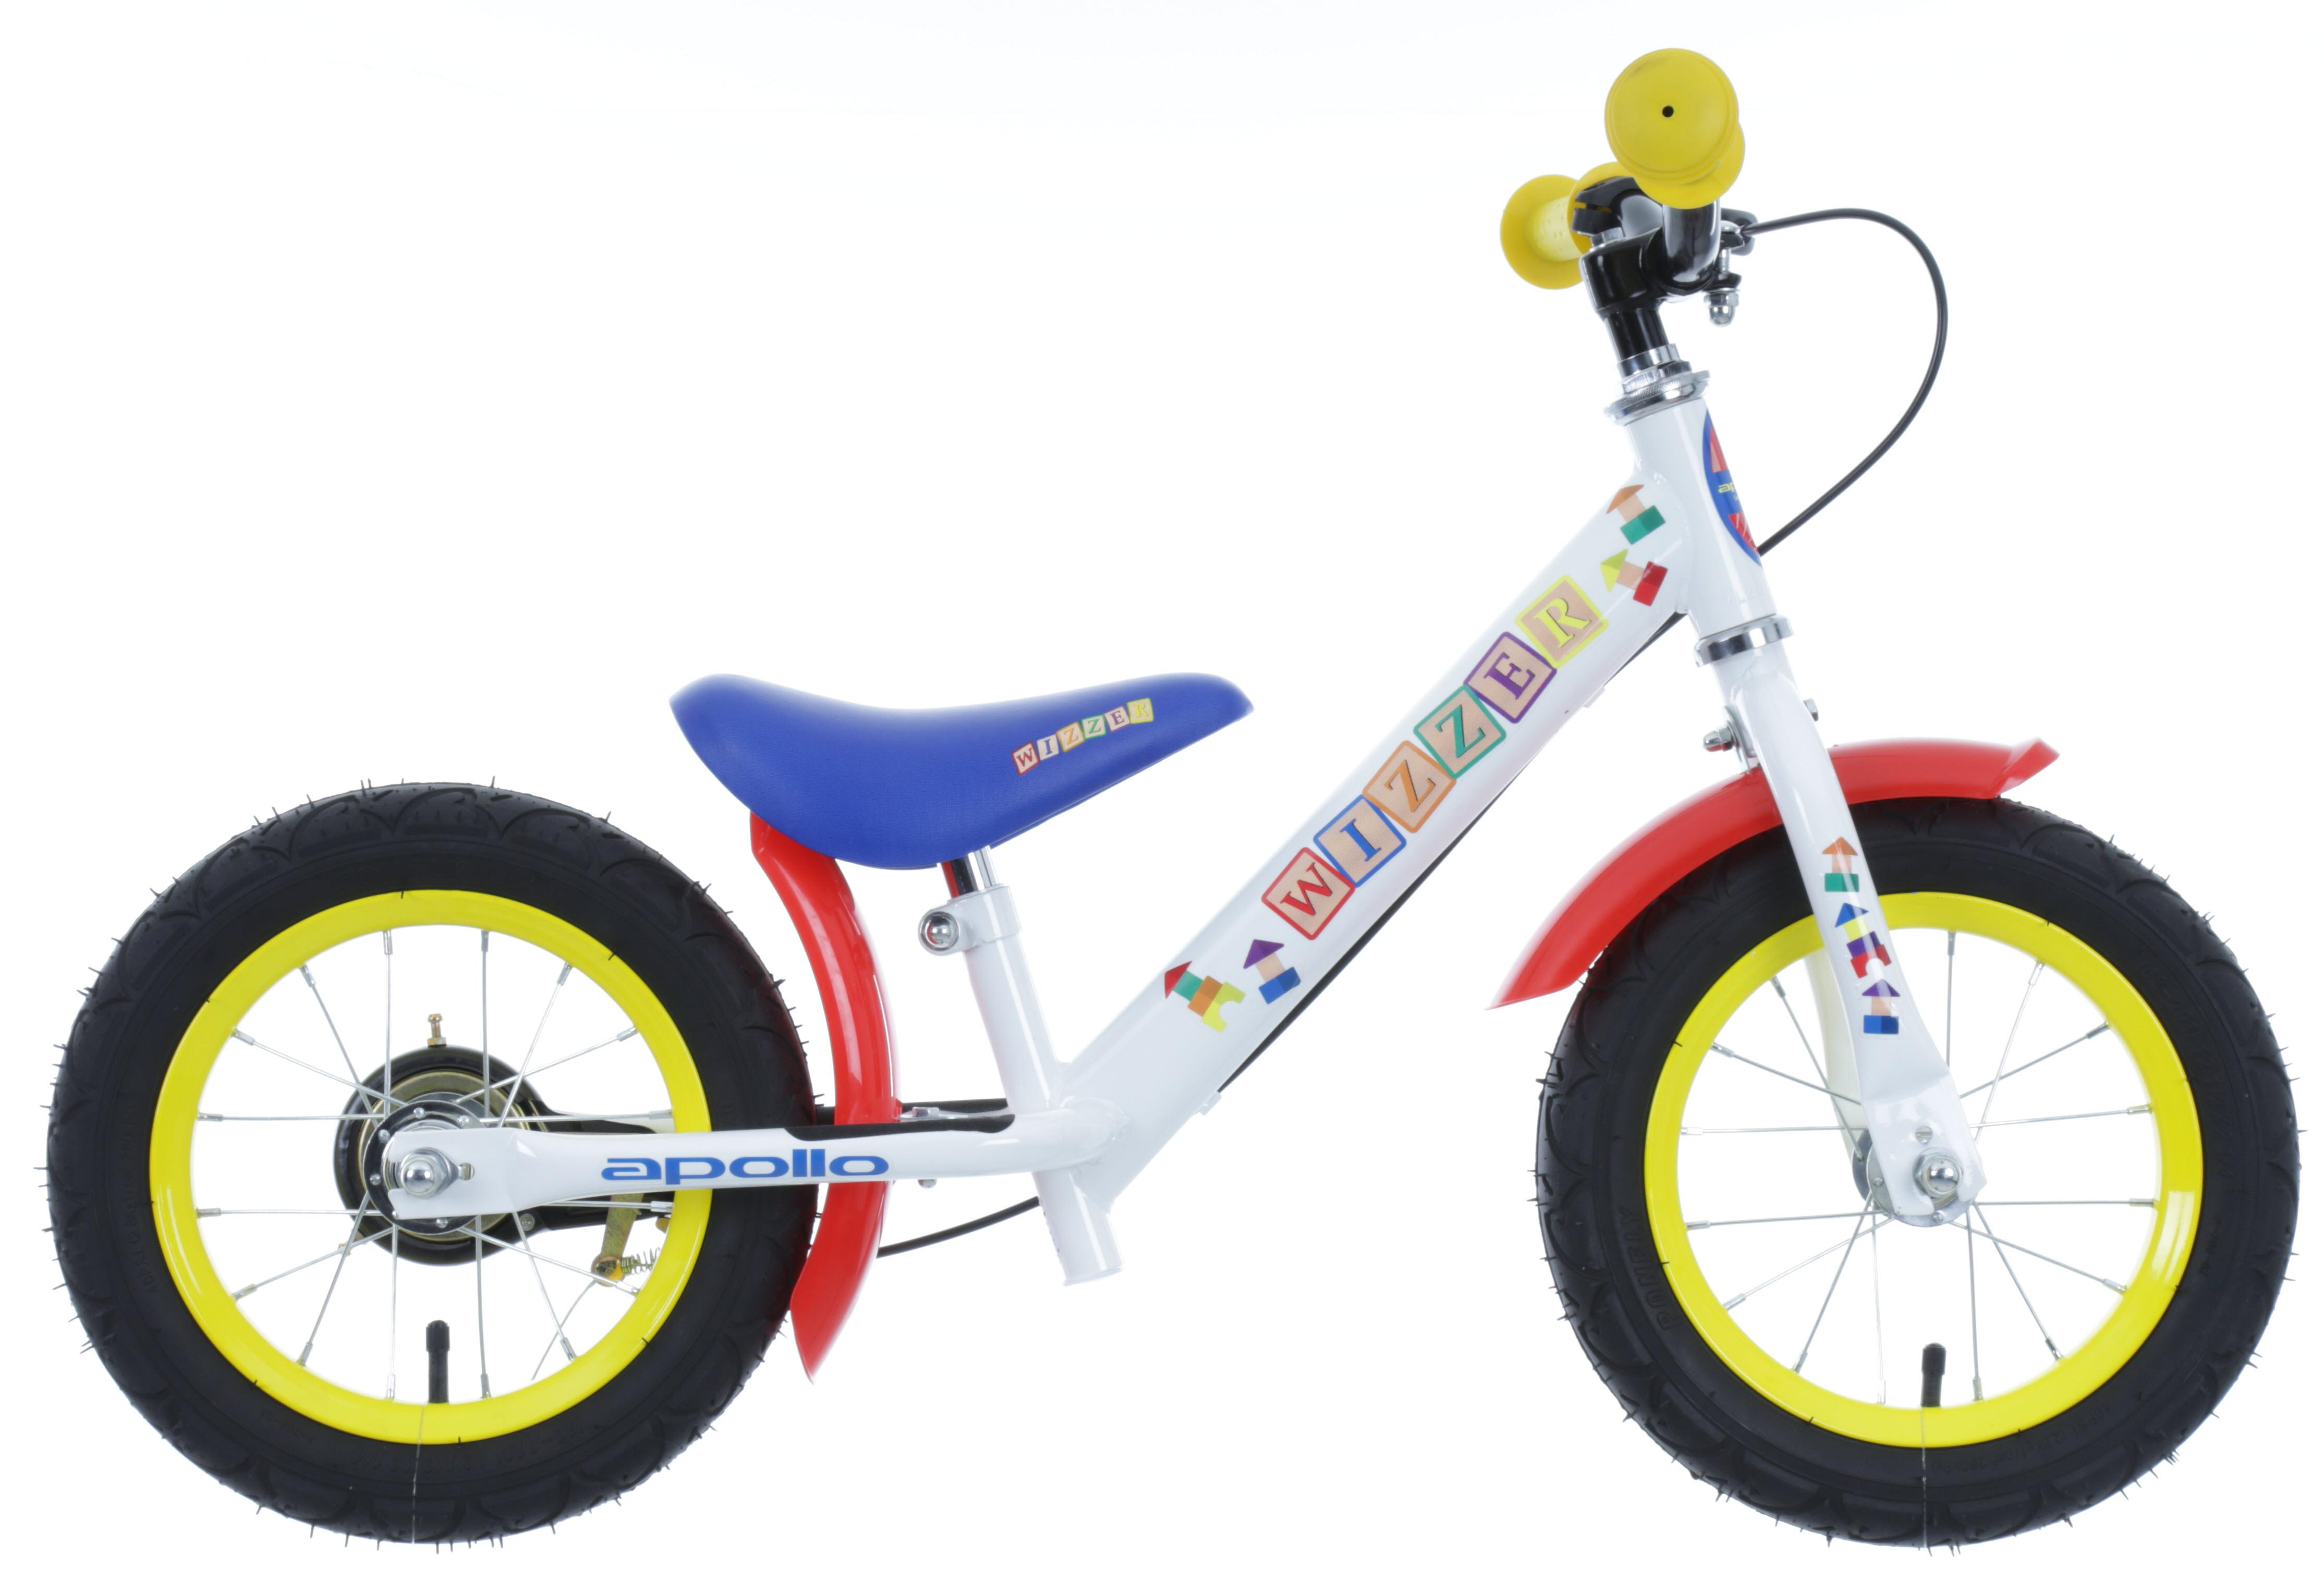 apollo wooden balance bike instructions 2